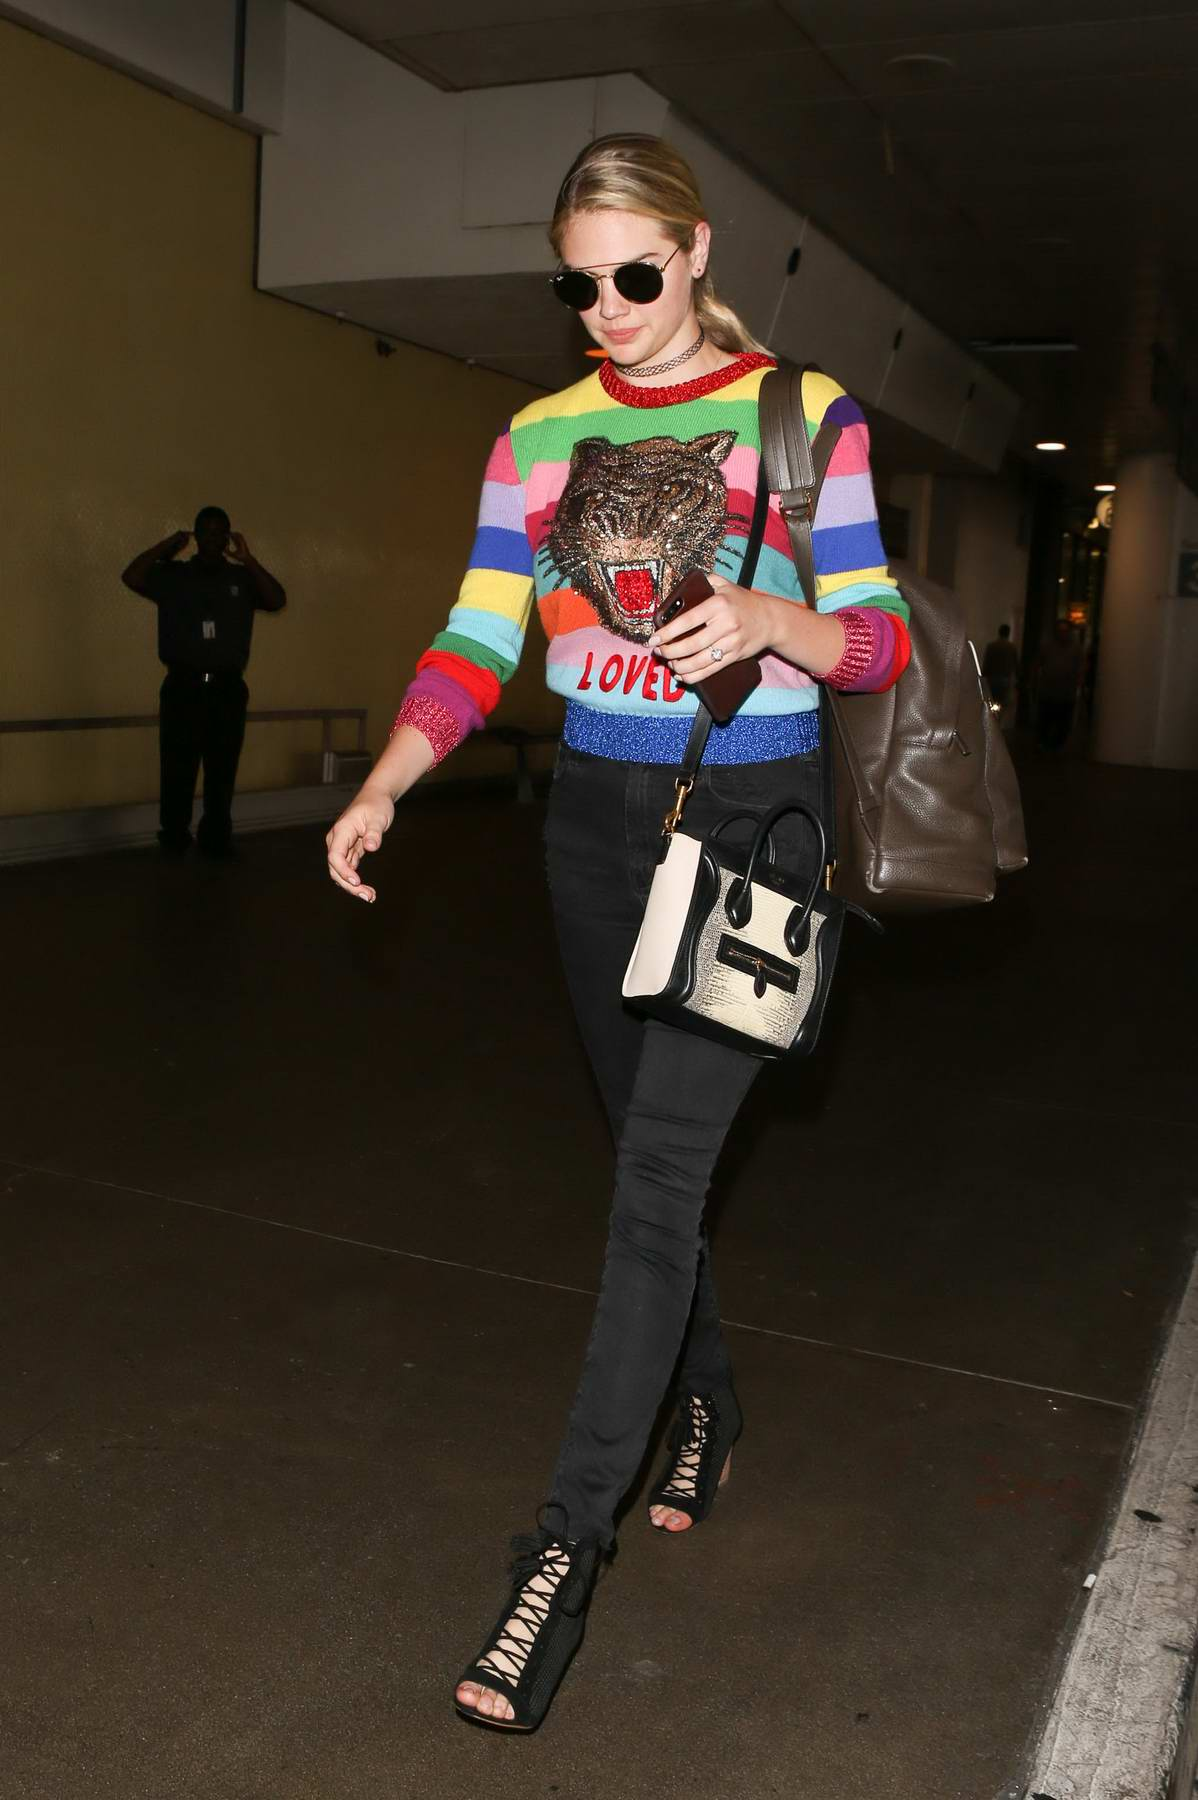 Kate Upton wears colored Gucci sweater upon arrival at LAX Airport in Los Angeles